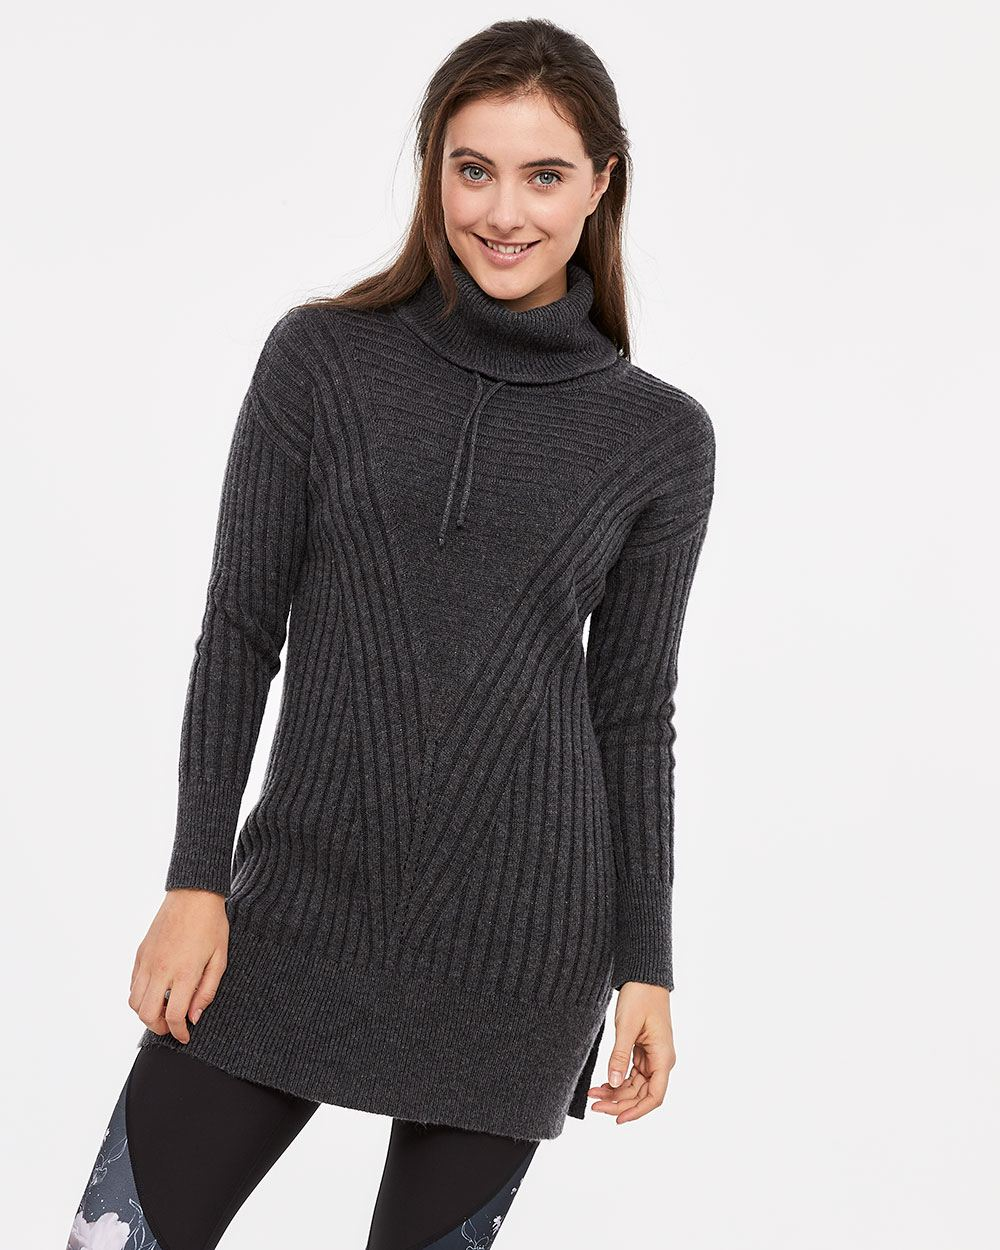 Hyba Turtleneck Tunic Sweater